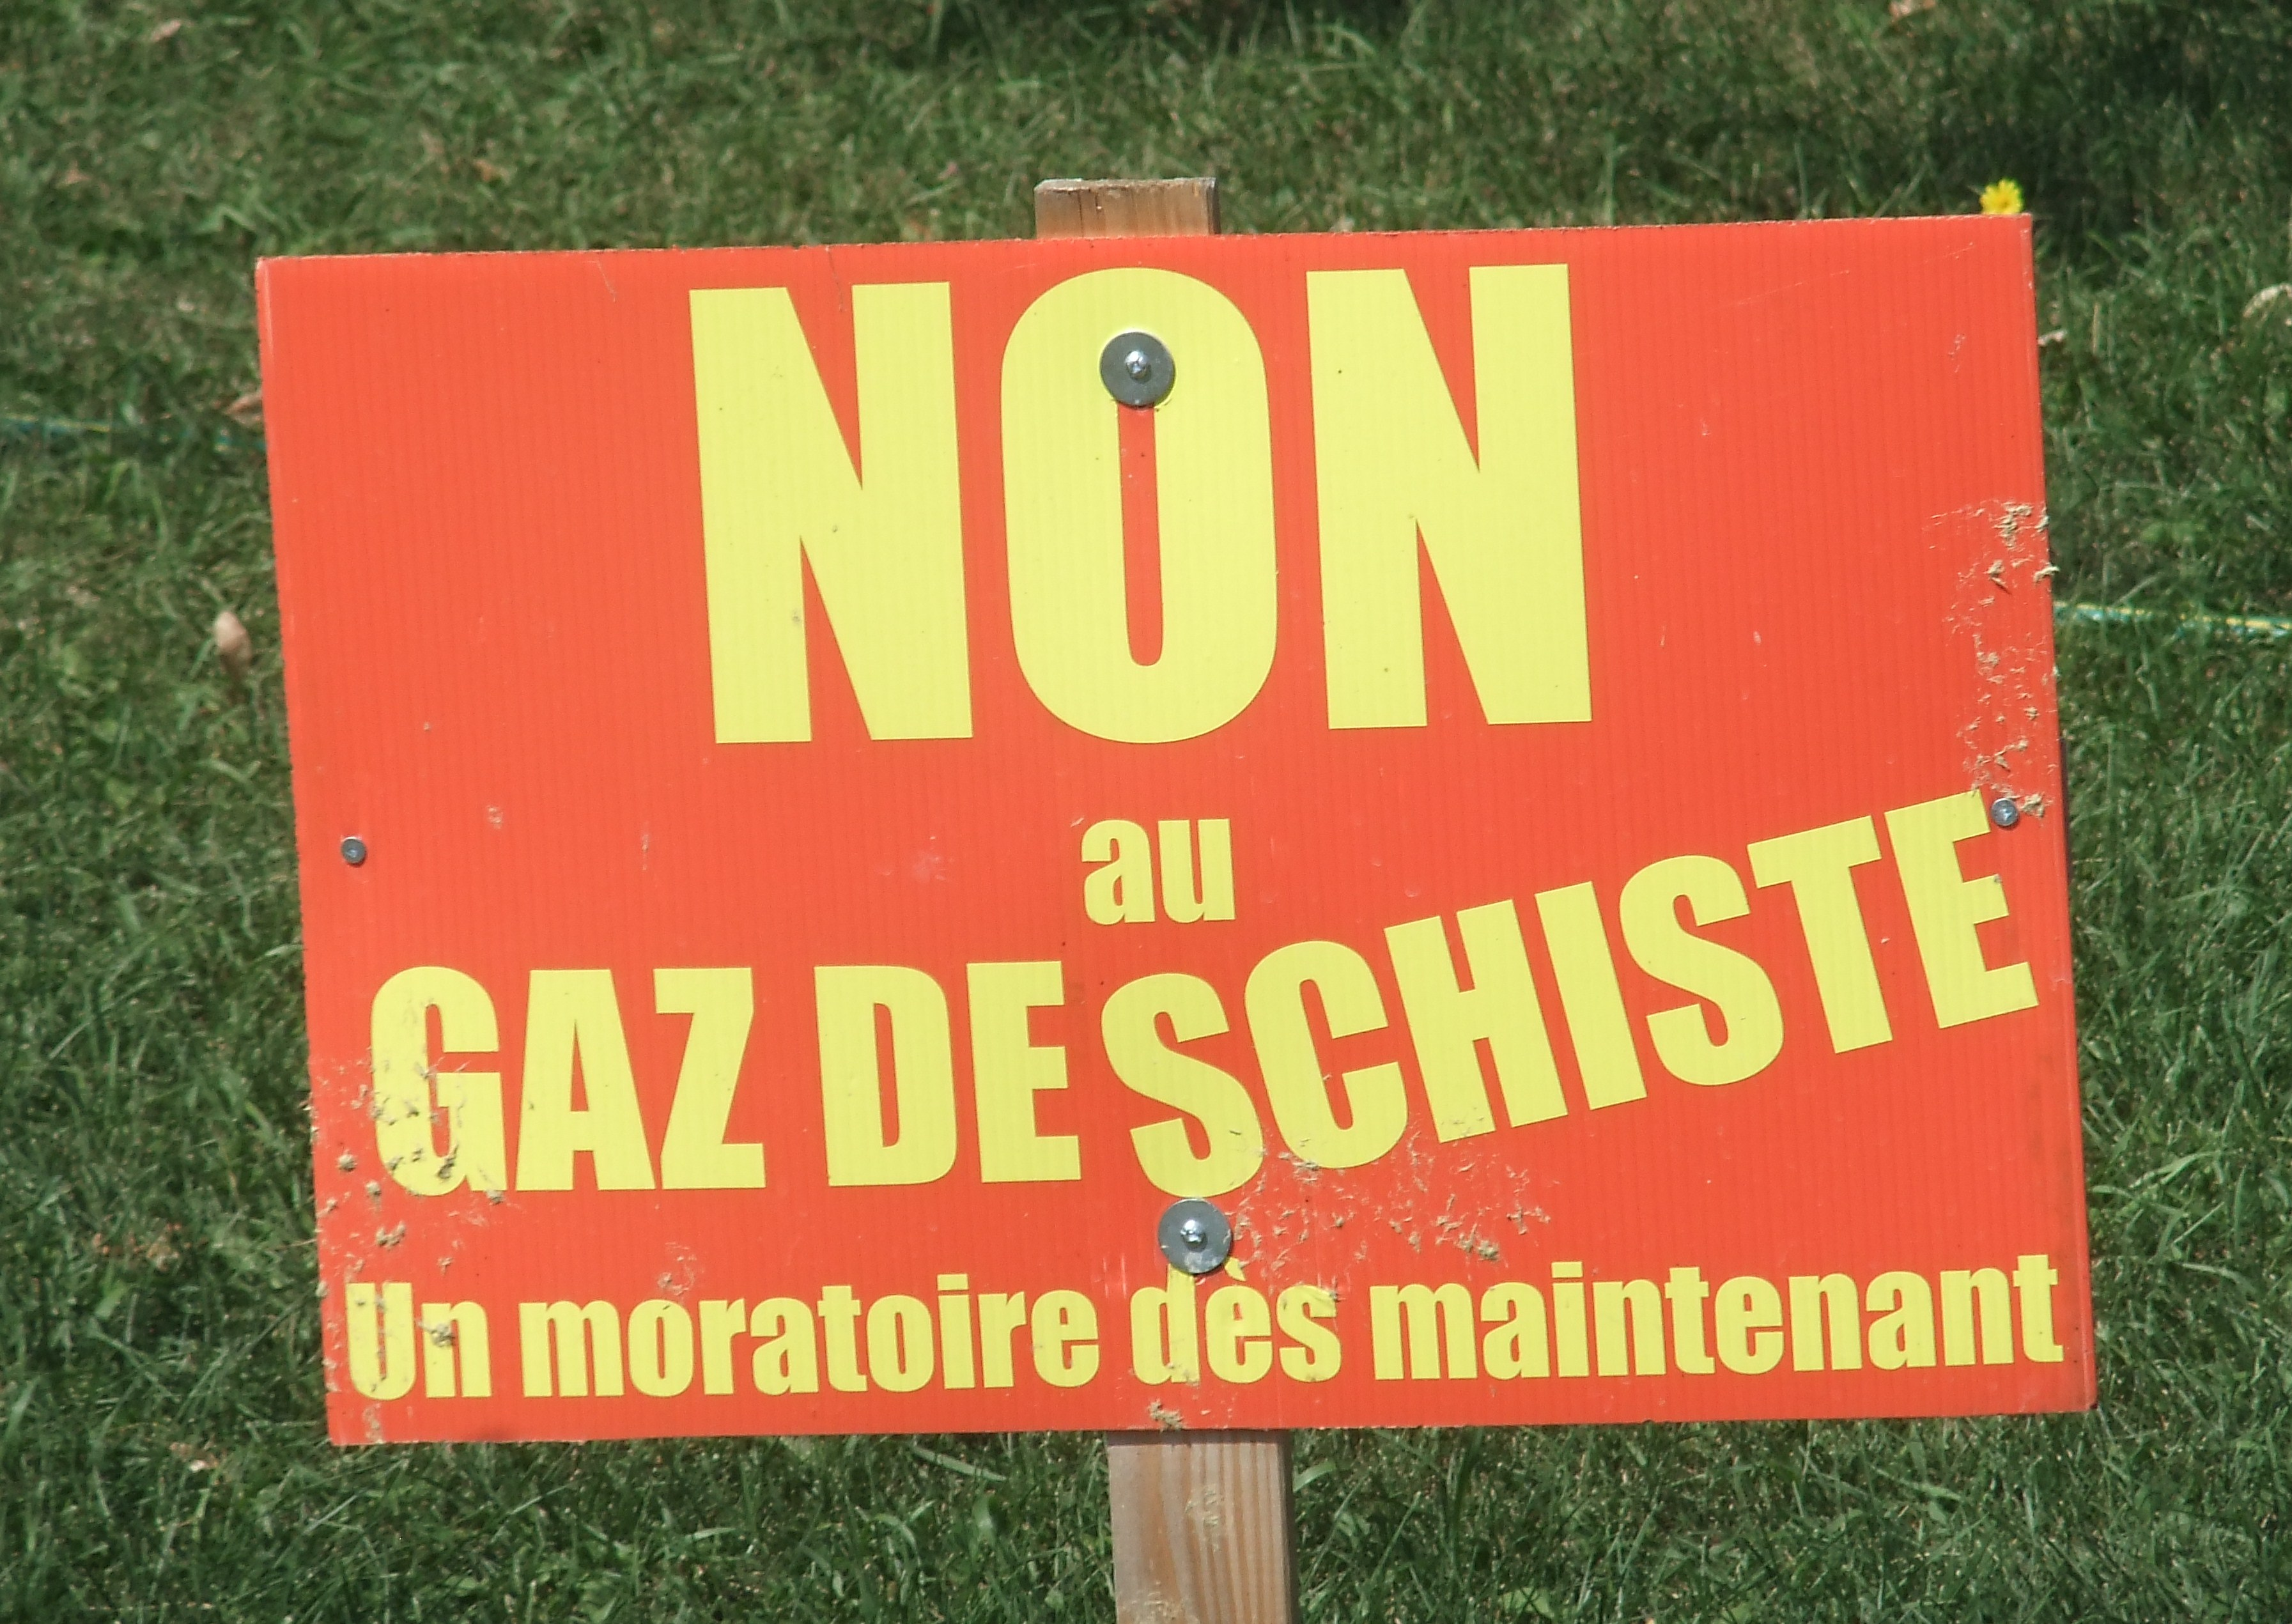 https://www.facebook.com/pages/Danger-Gaz-De-Schiste-France/166135816765527